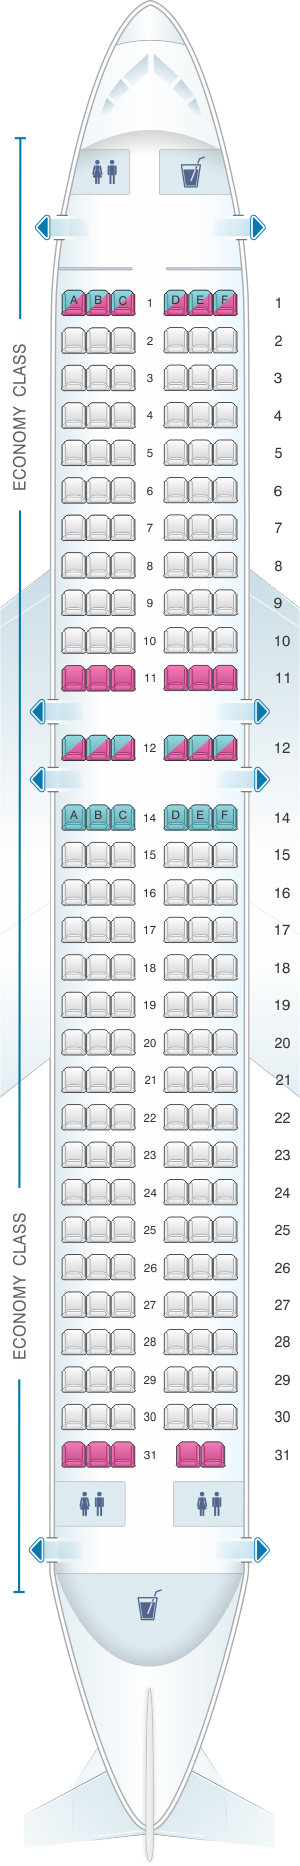 Seat map for Cebu Pacific Air Airbus A320